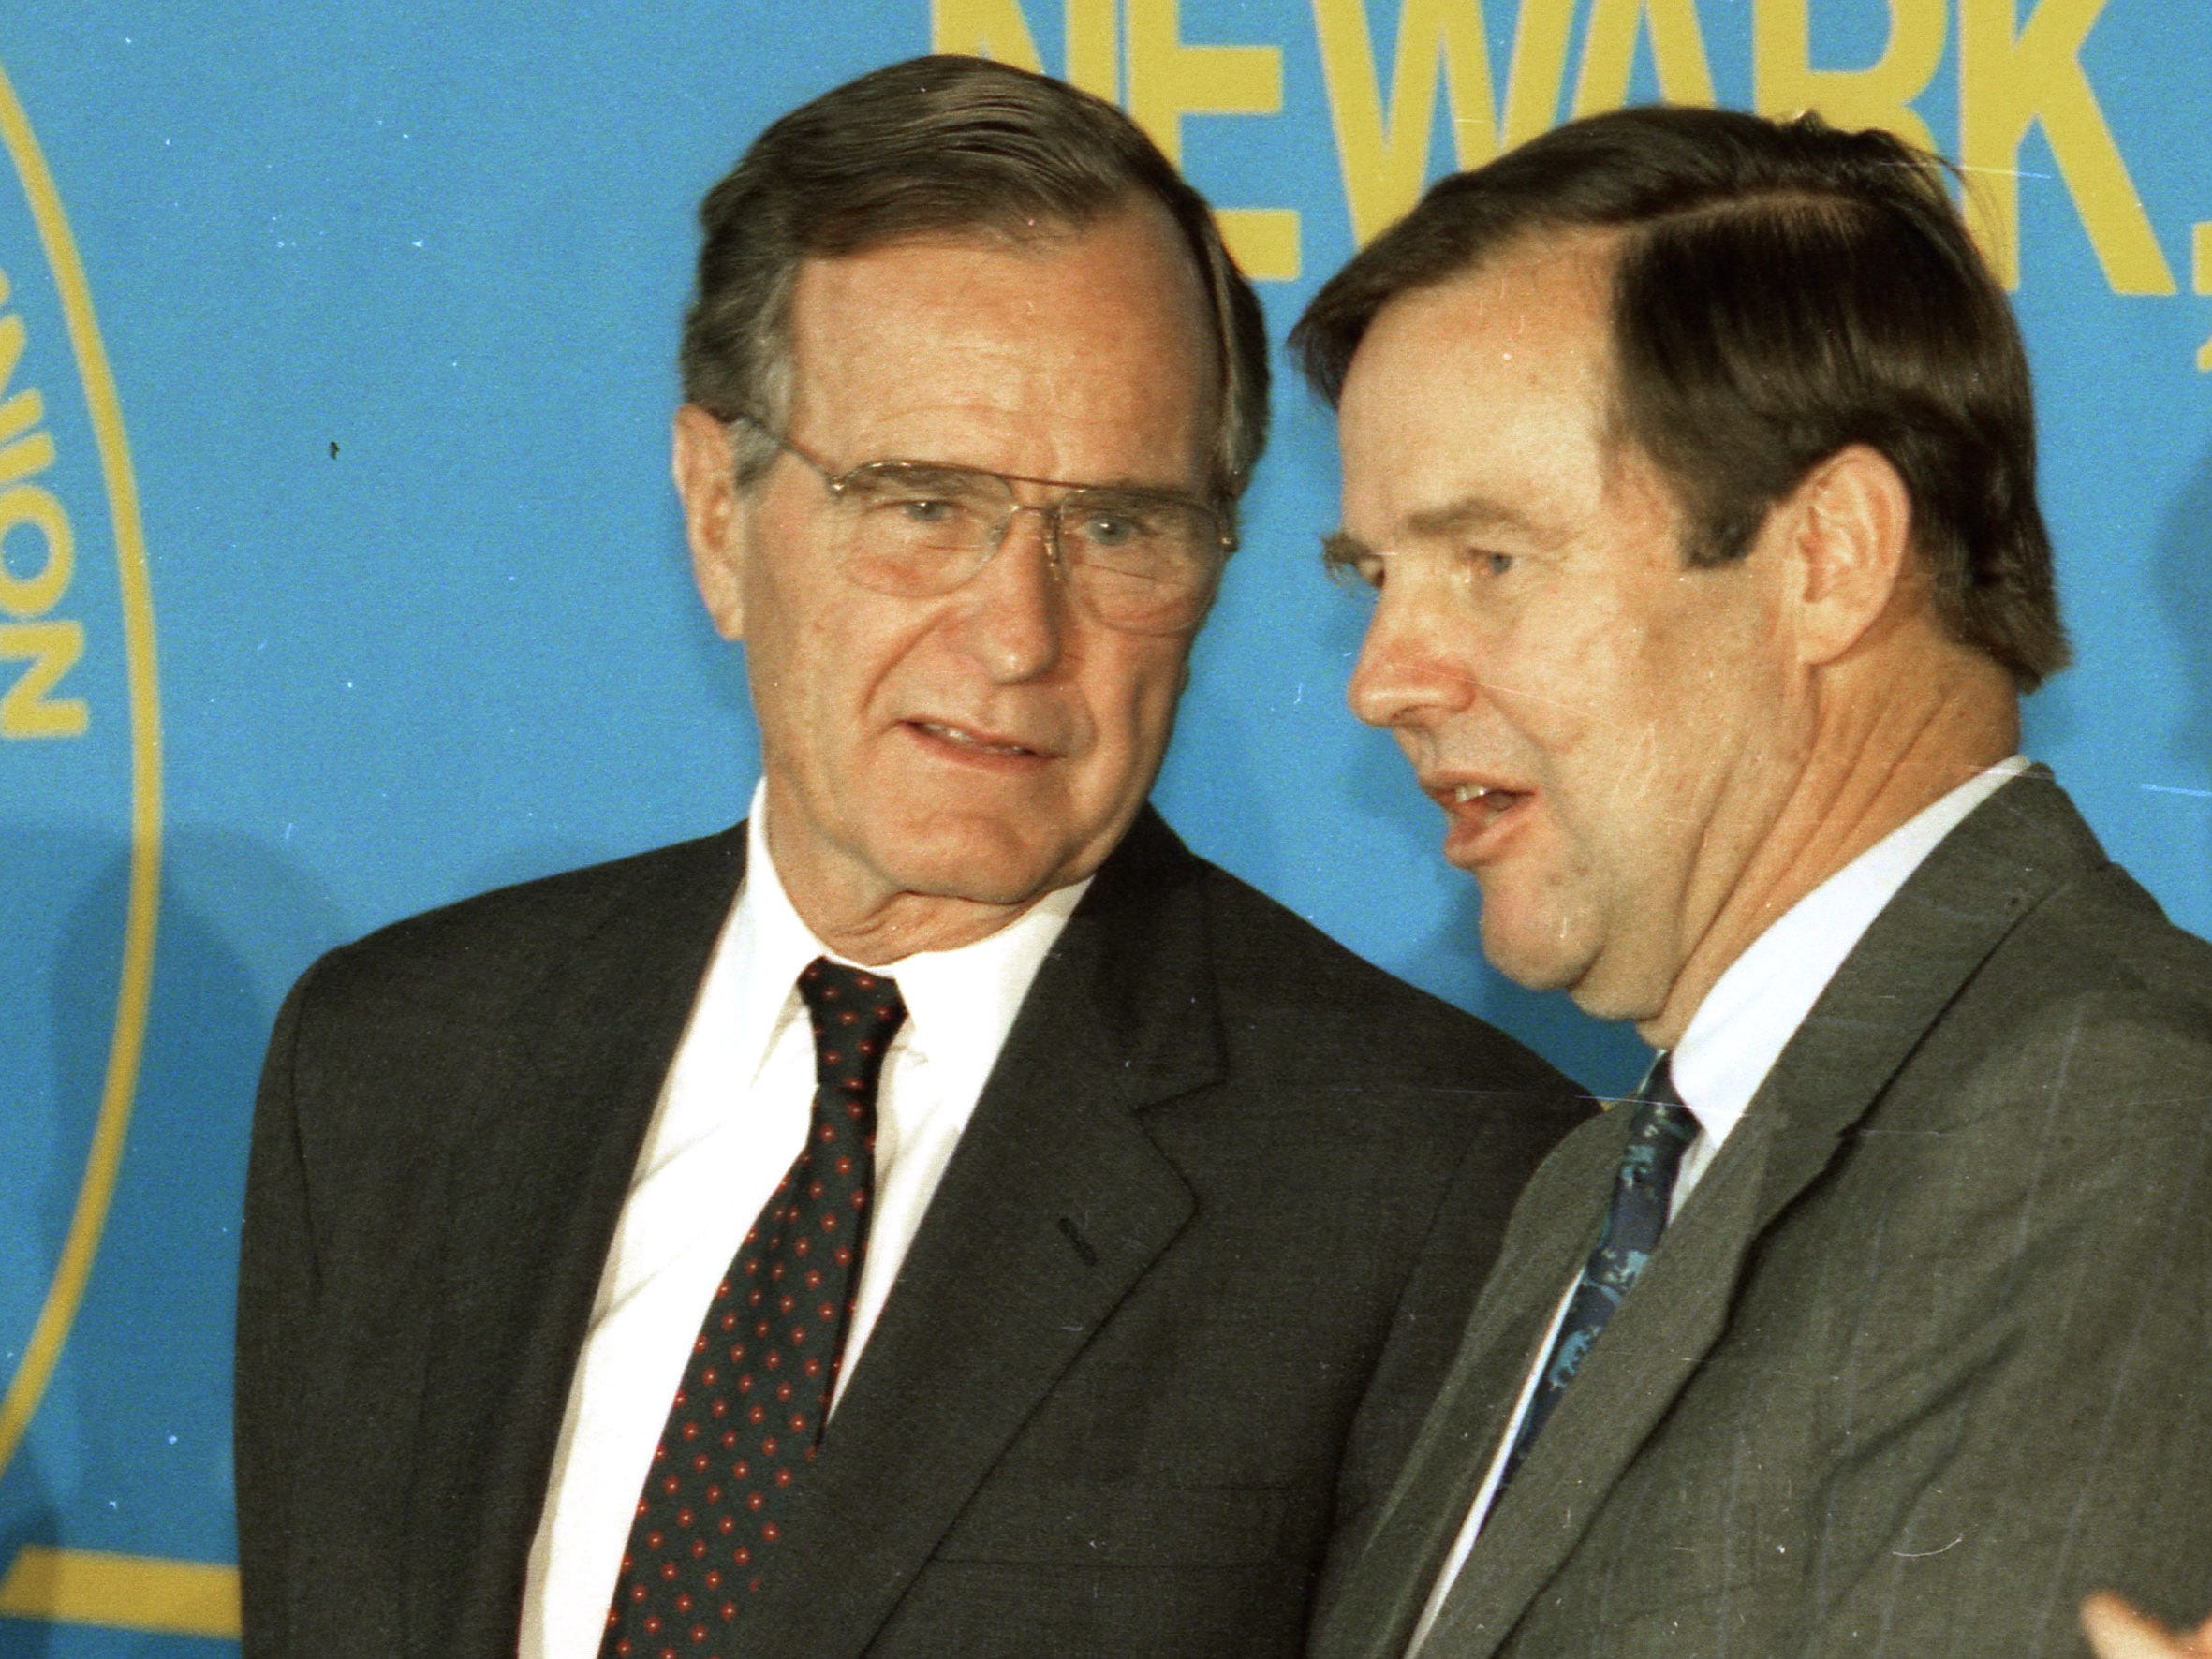 President George HW Bush speaks with NJ Governor Tom Kean at the Laborers Union Local 472 of the Heavy and General Construction Workers in Newark, NJ, on September 30 1992.